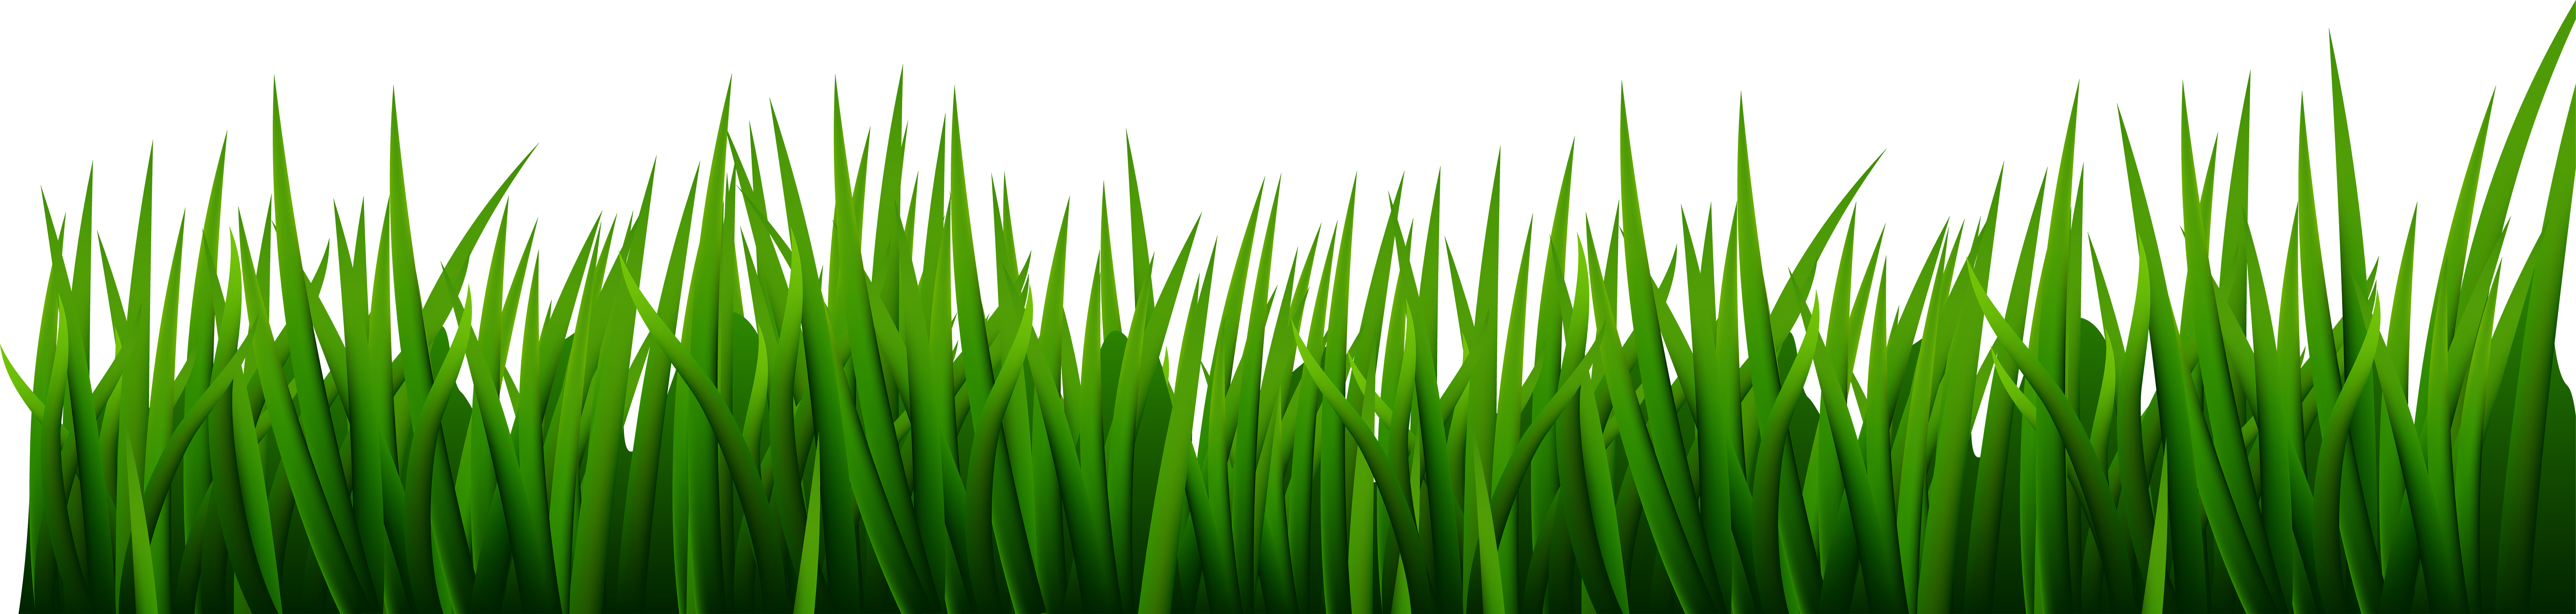 Clip art image gallery. Grass clipart png format vector black and white